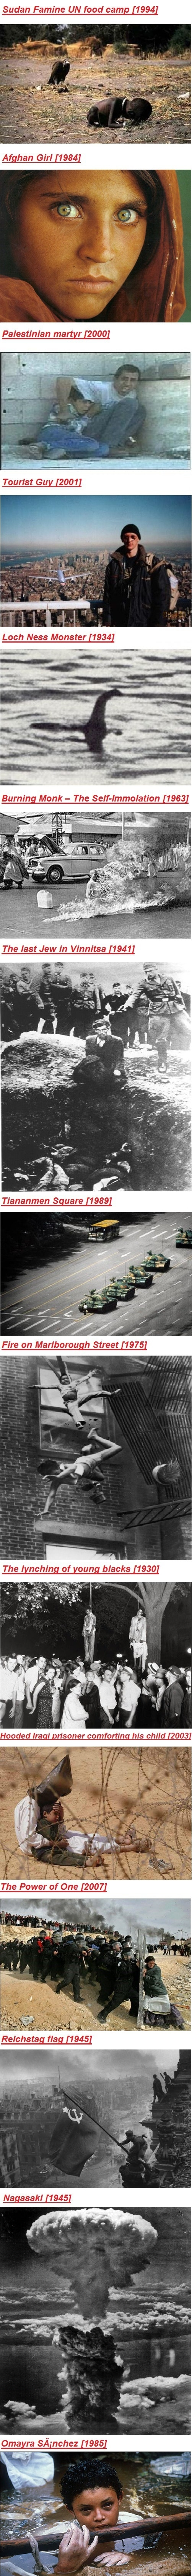 Famous photos in history